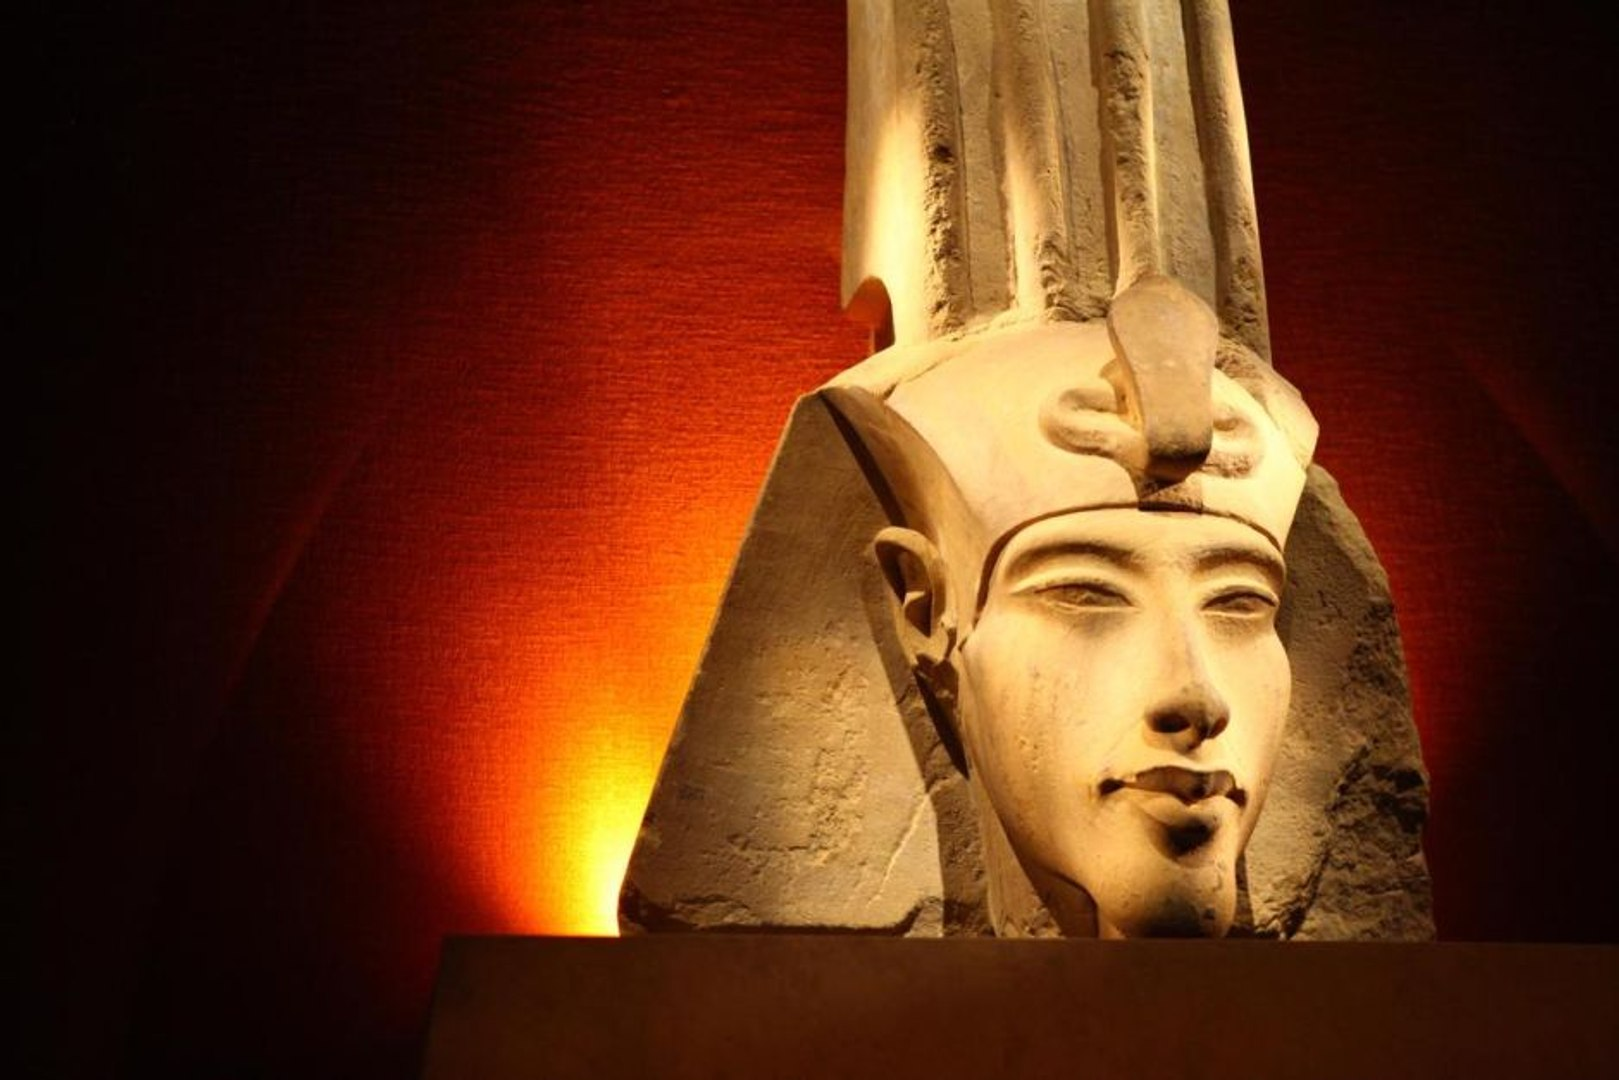 Ancient Civilizations - The Rebel Pharaoh (Akhenaten)